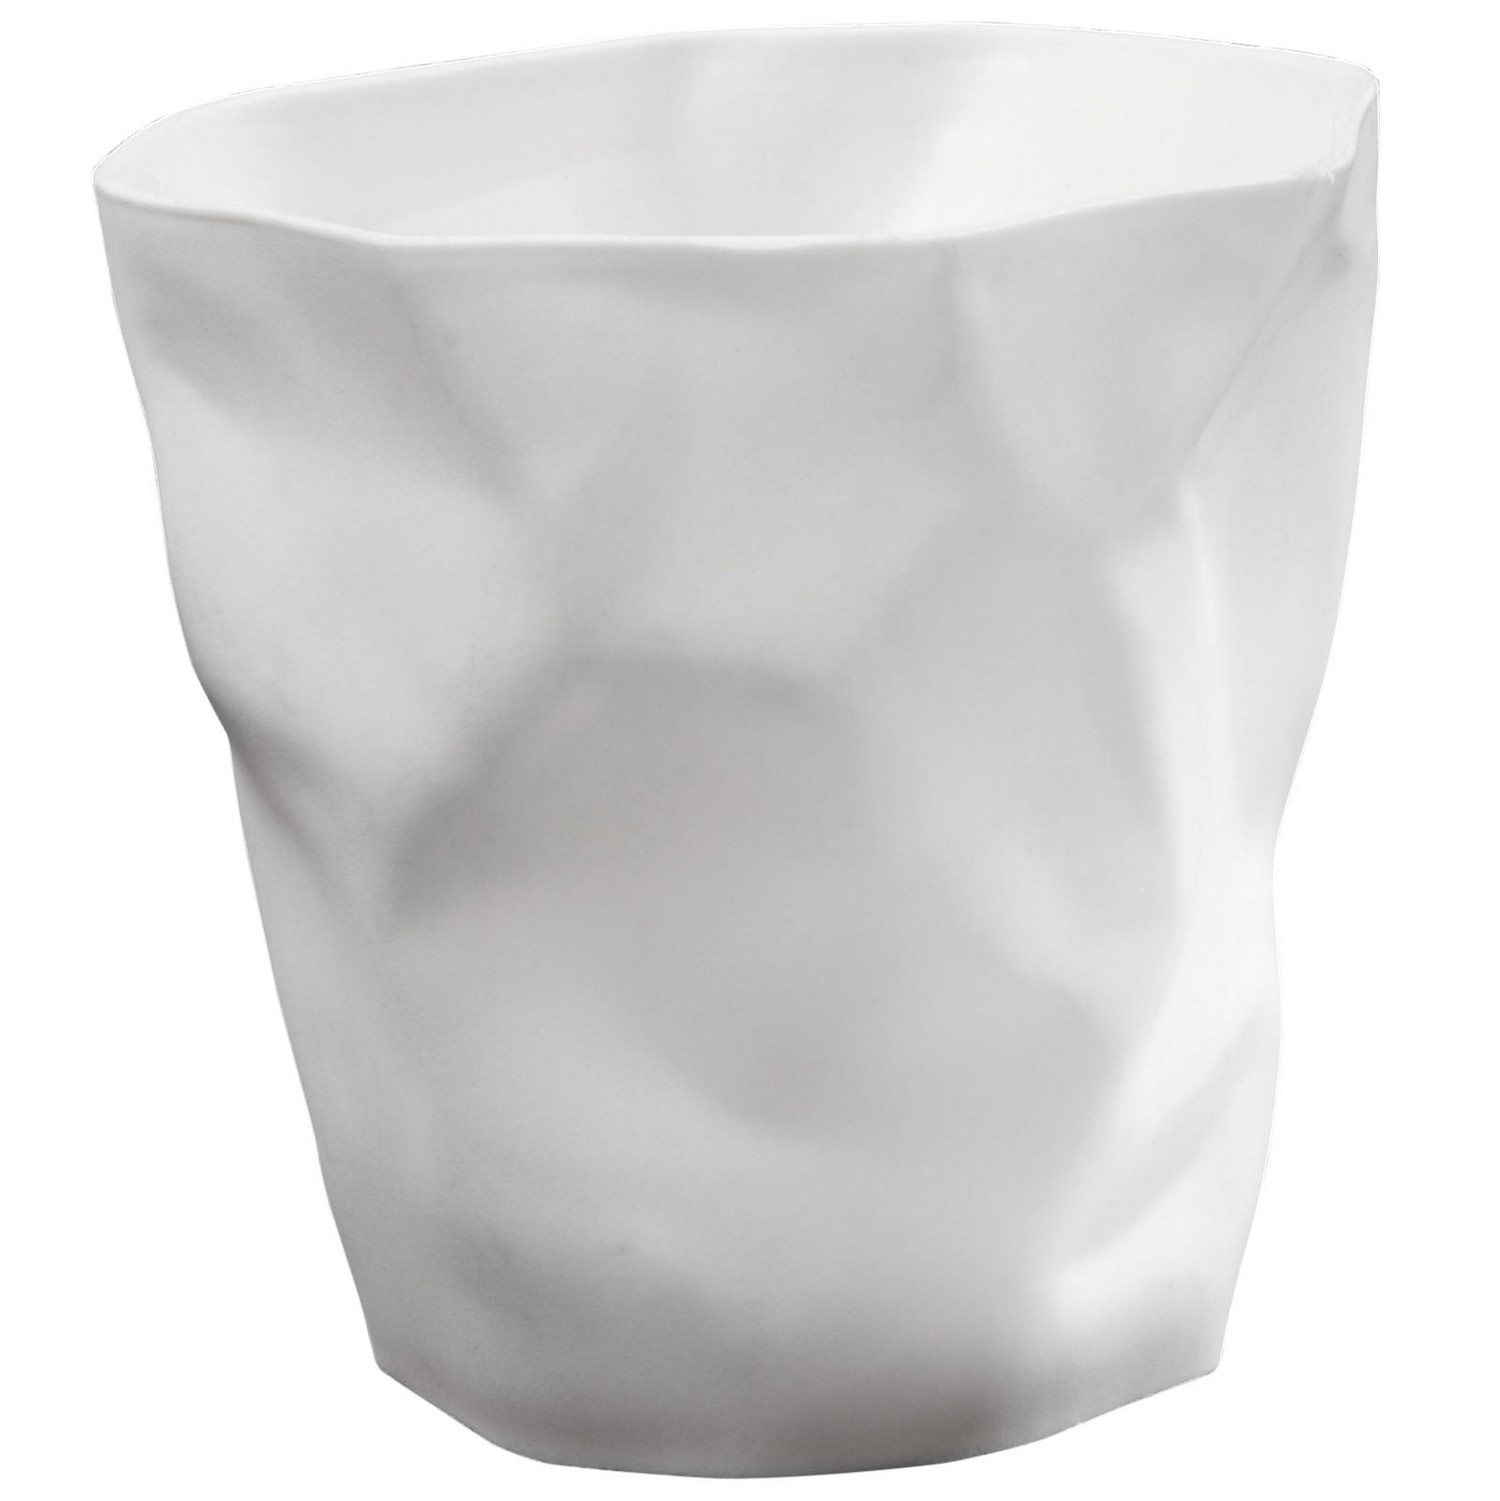 Modway Lava Pencil Holder - White